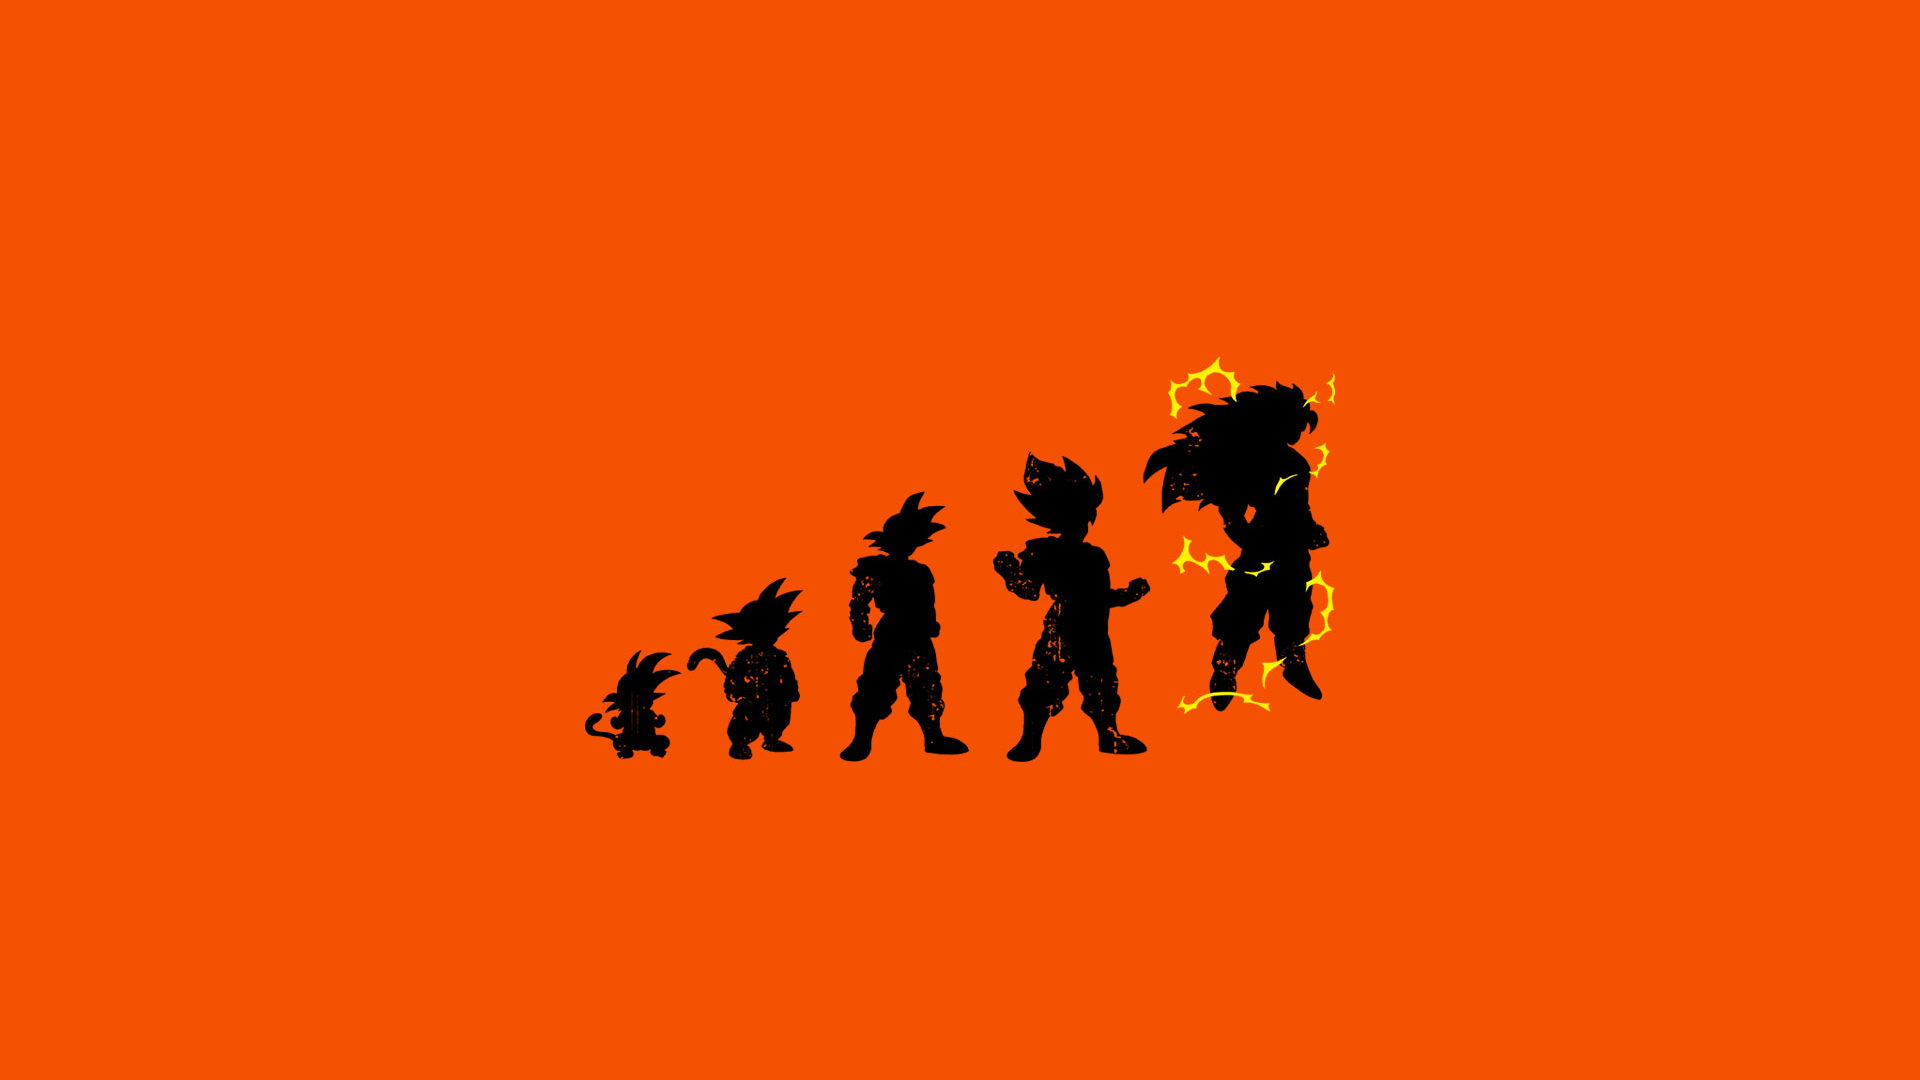 download dragon ball z live wallpaper for android